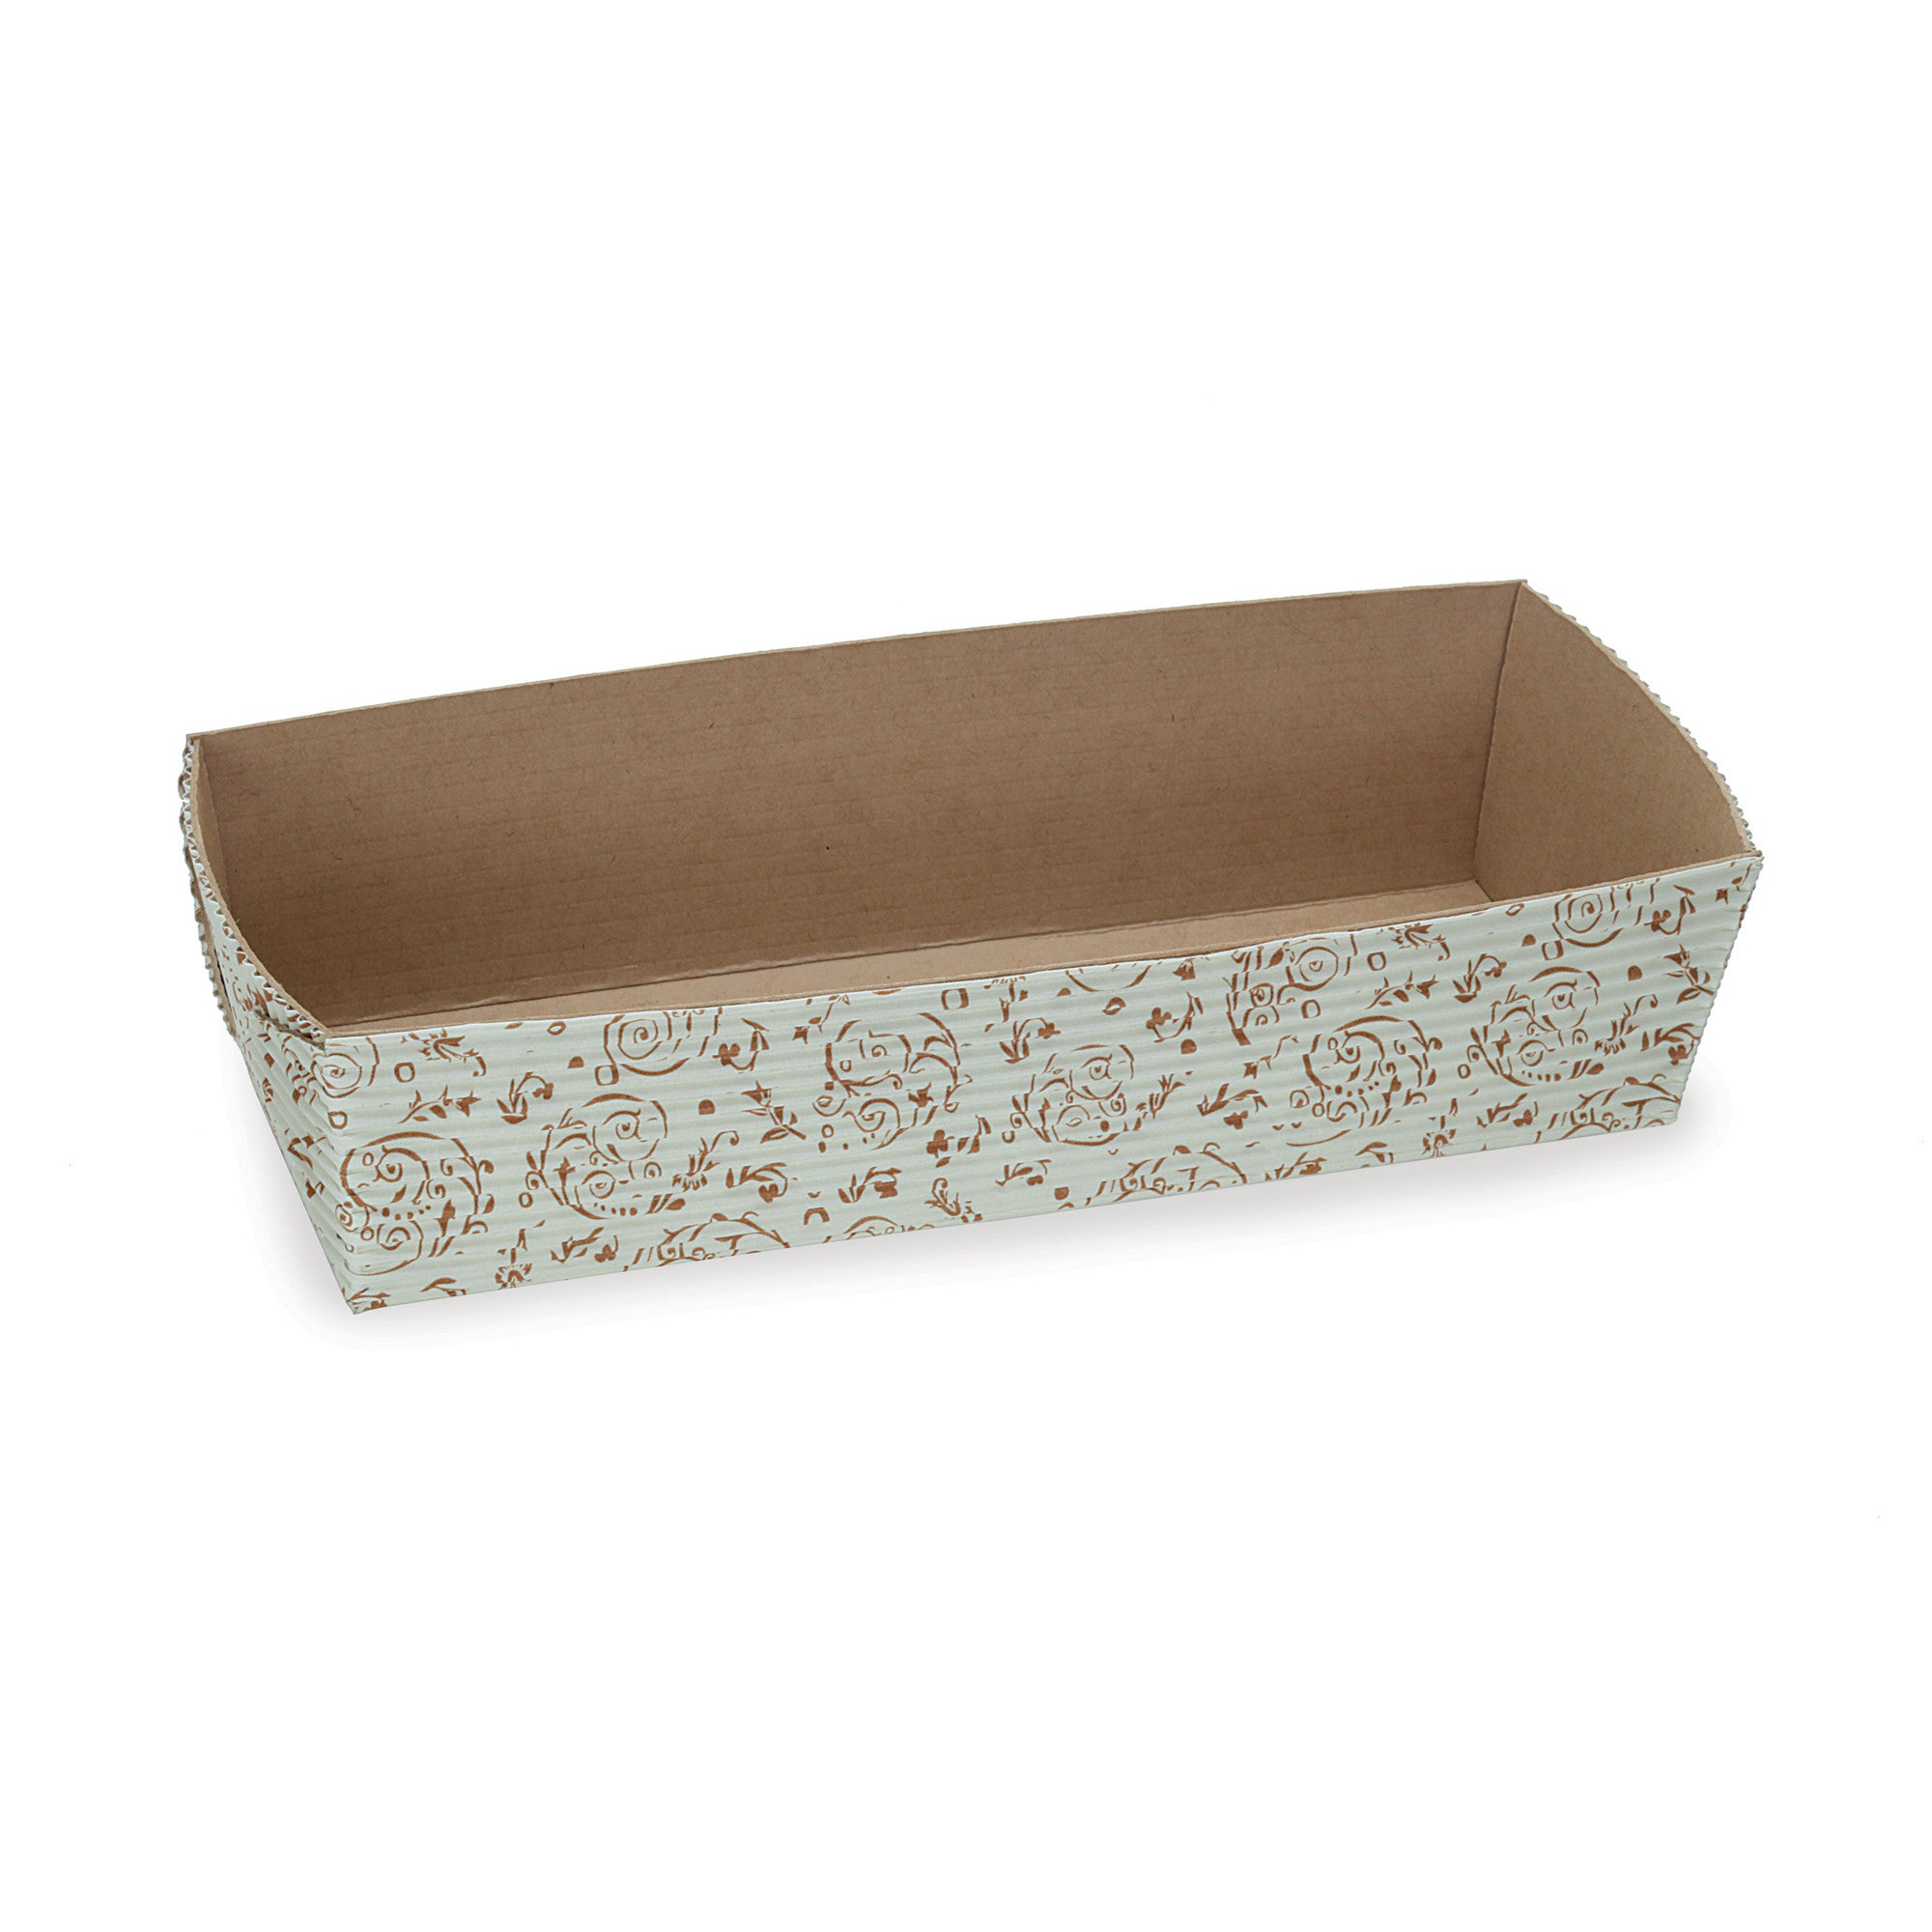 "6.9"" Loaf Pans, CT8145 - Welcome Home Brands"